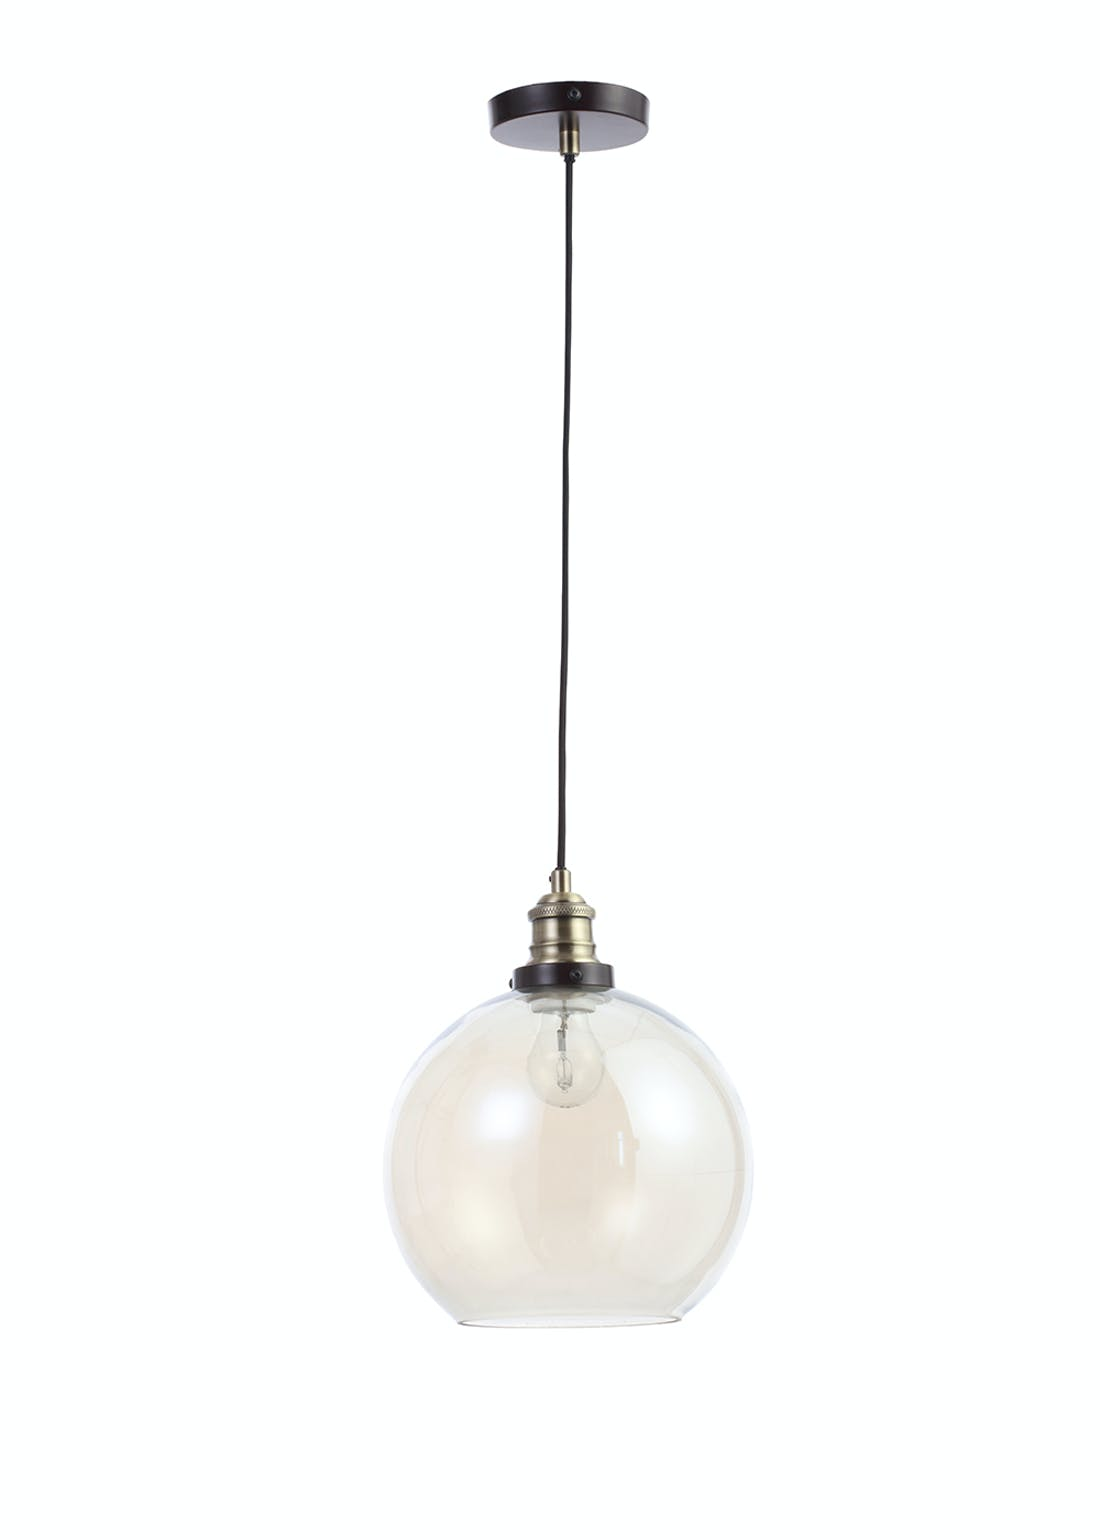 Callisto Glass Pendant Light (H50-100cm x W25cm)